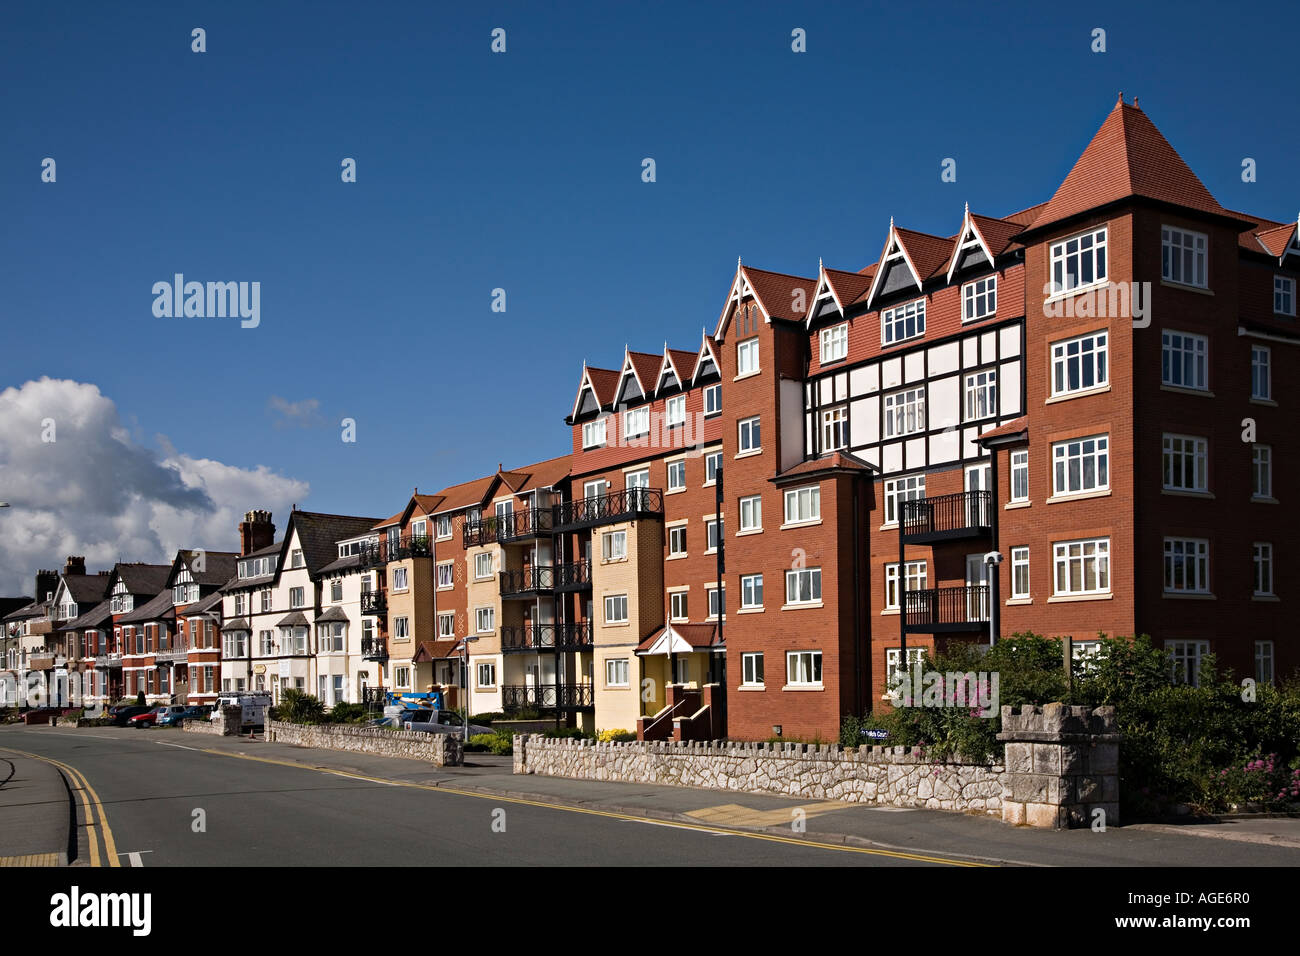 Buildings on the sea front Rhos on Sea Conwy Wales UK - Stock Image